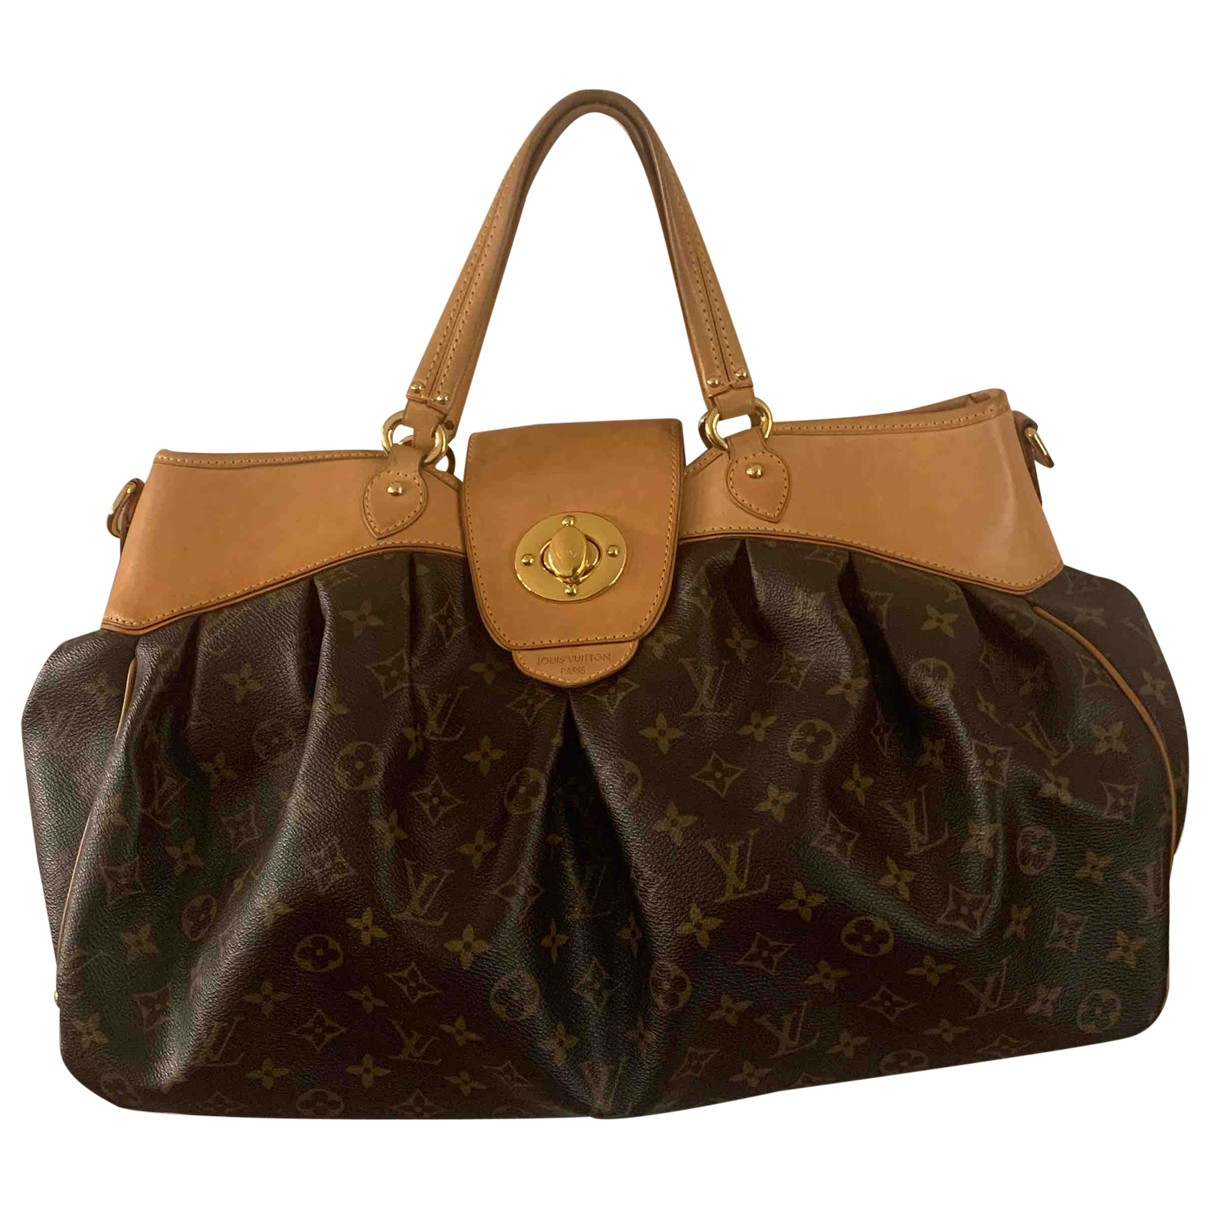 Louis Vuitton Boetie Multicolour Leather handbag for Women N